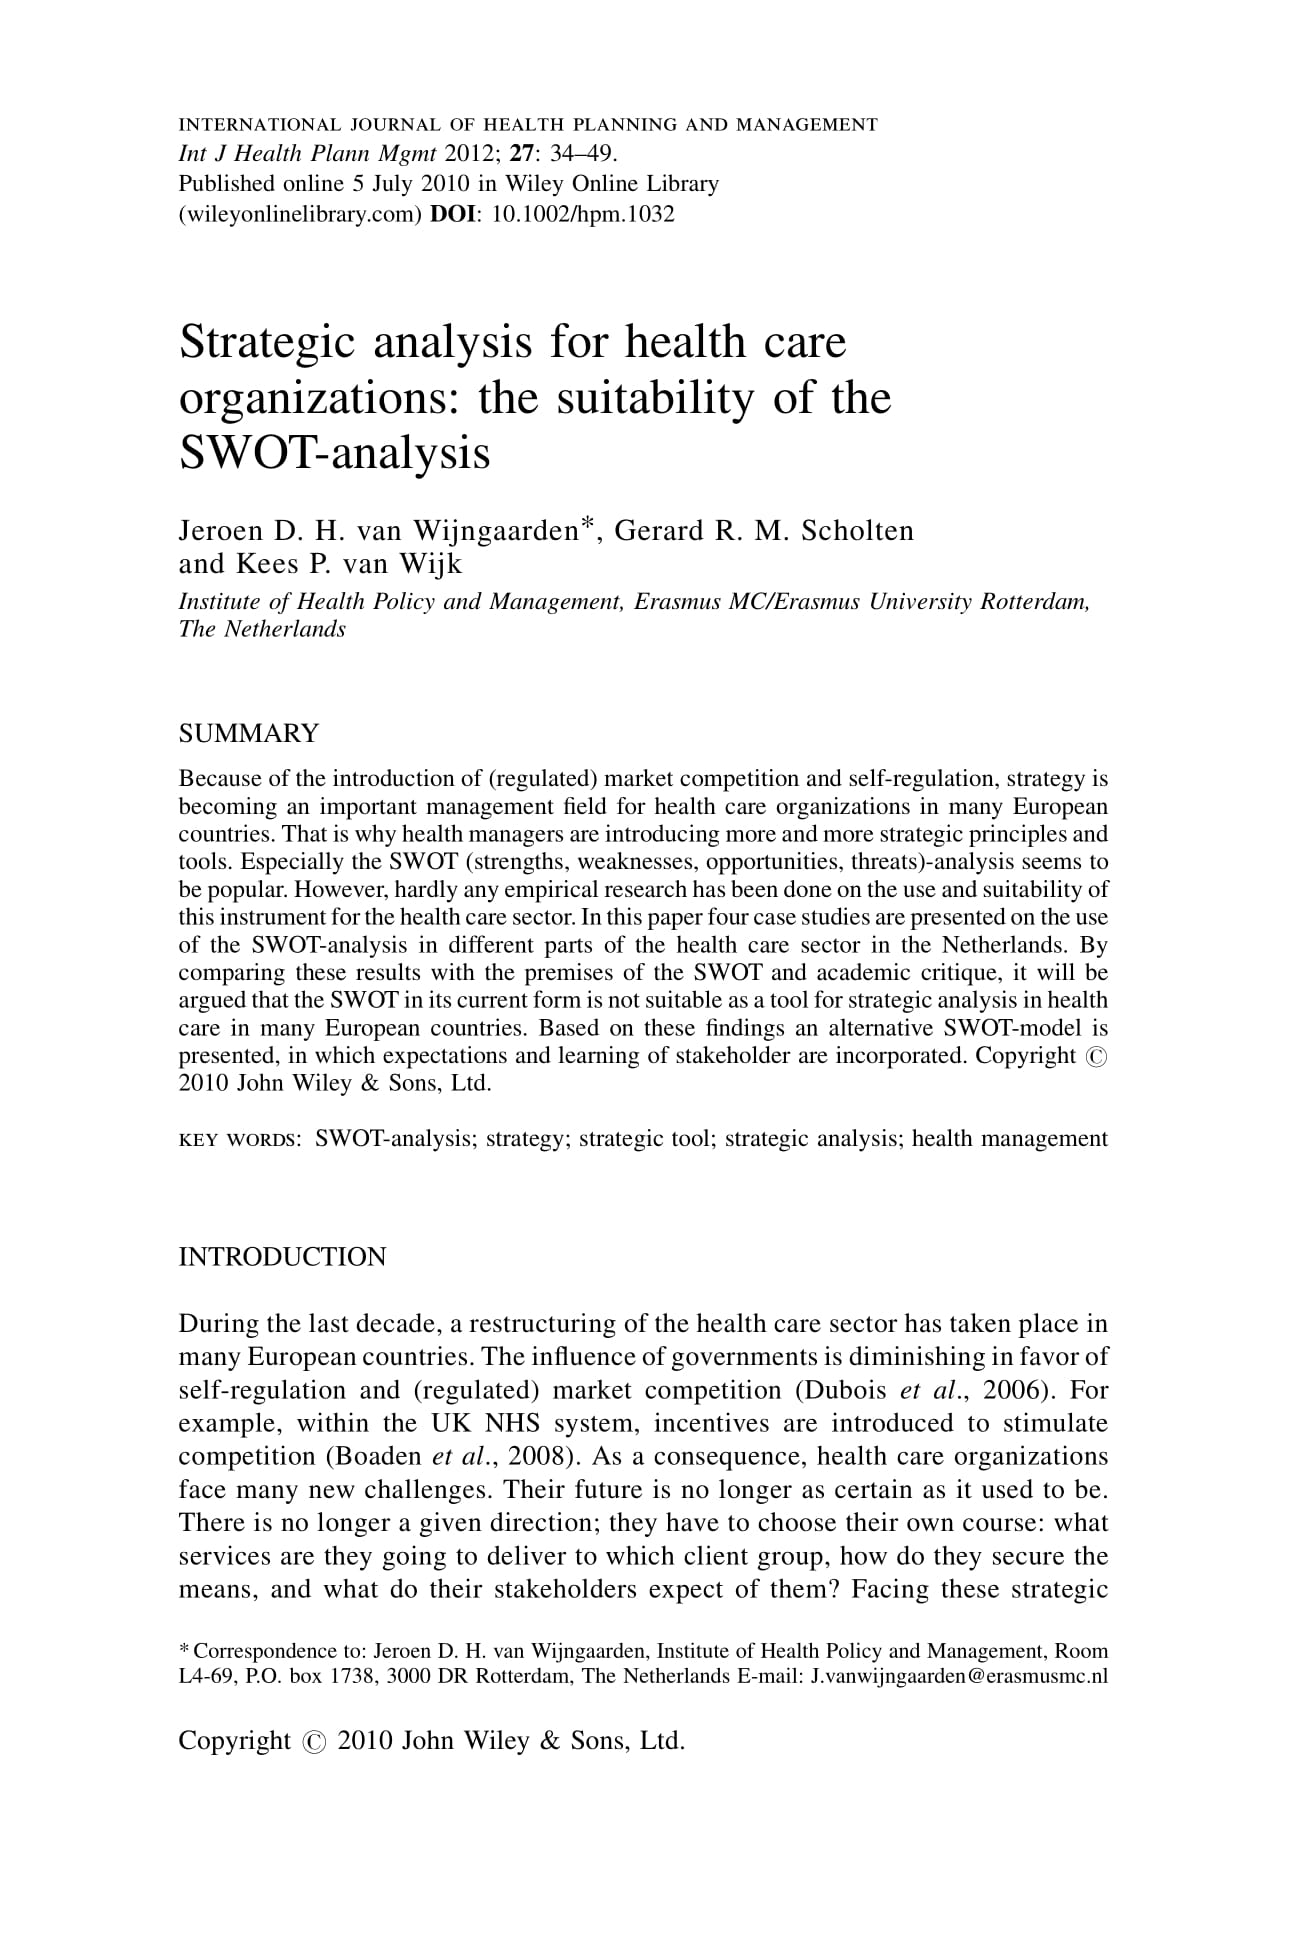 strategic analysis for health care organizations the suitability of the swot analysis example 01